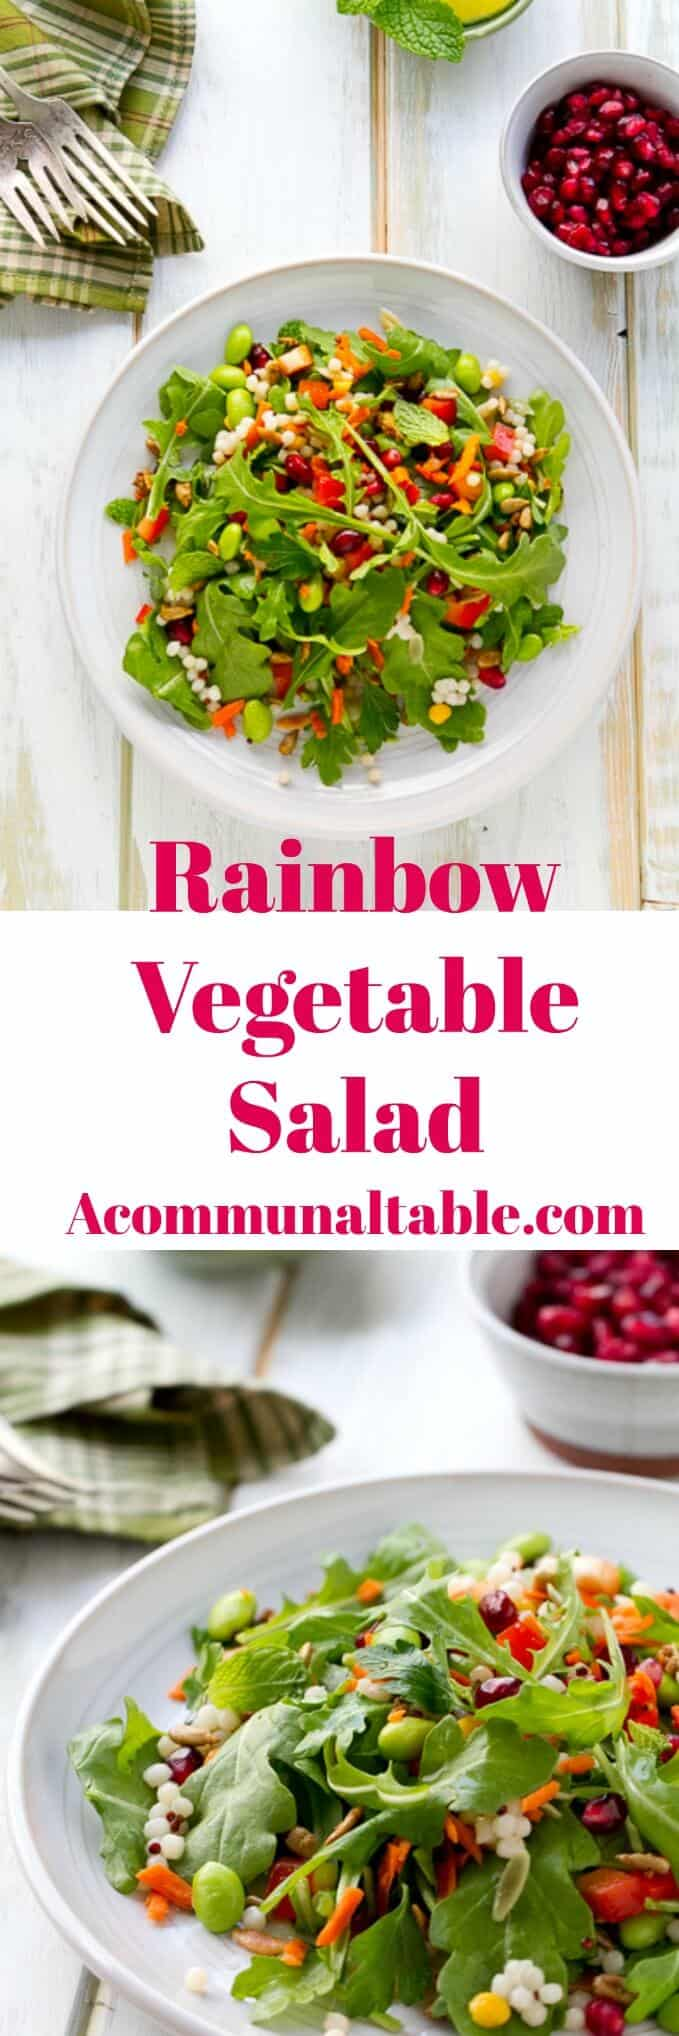 This Rainbow Vegetable Salad with Honey Lime Salad Dressing is an easy vegetarian recipe that is full of legumes, greens, vegetables and grains.